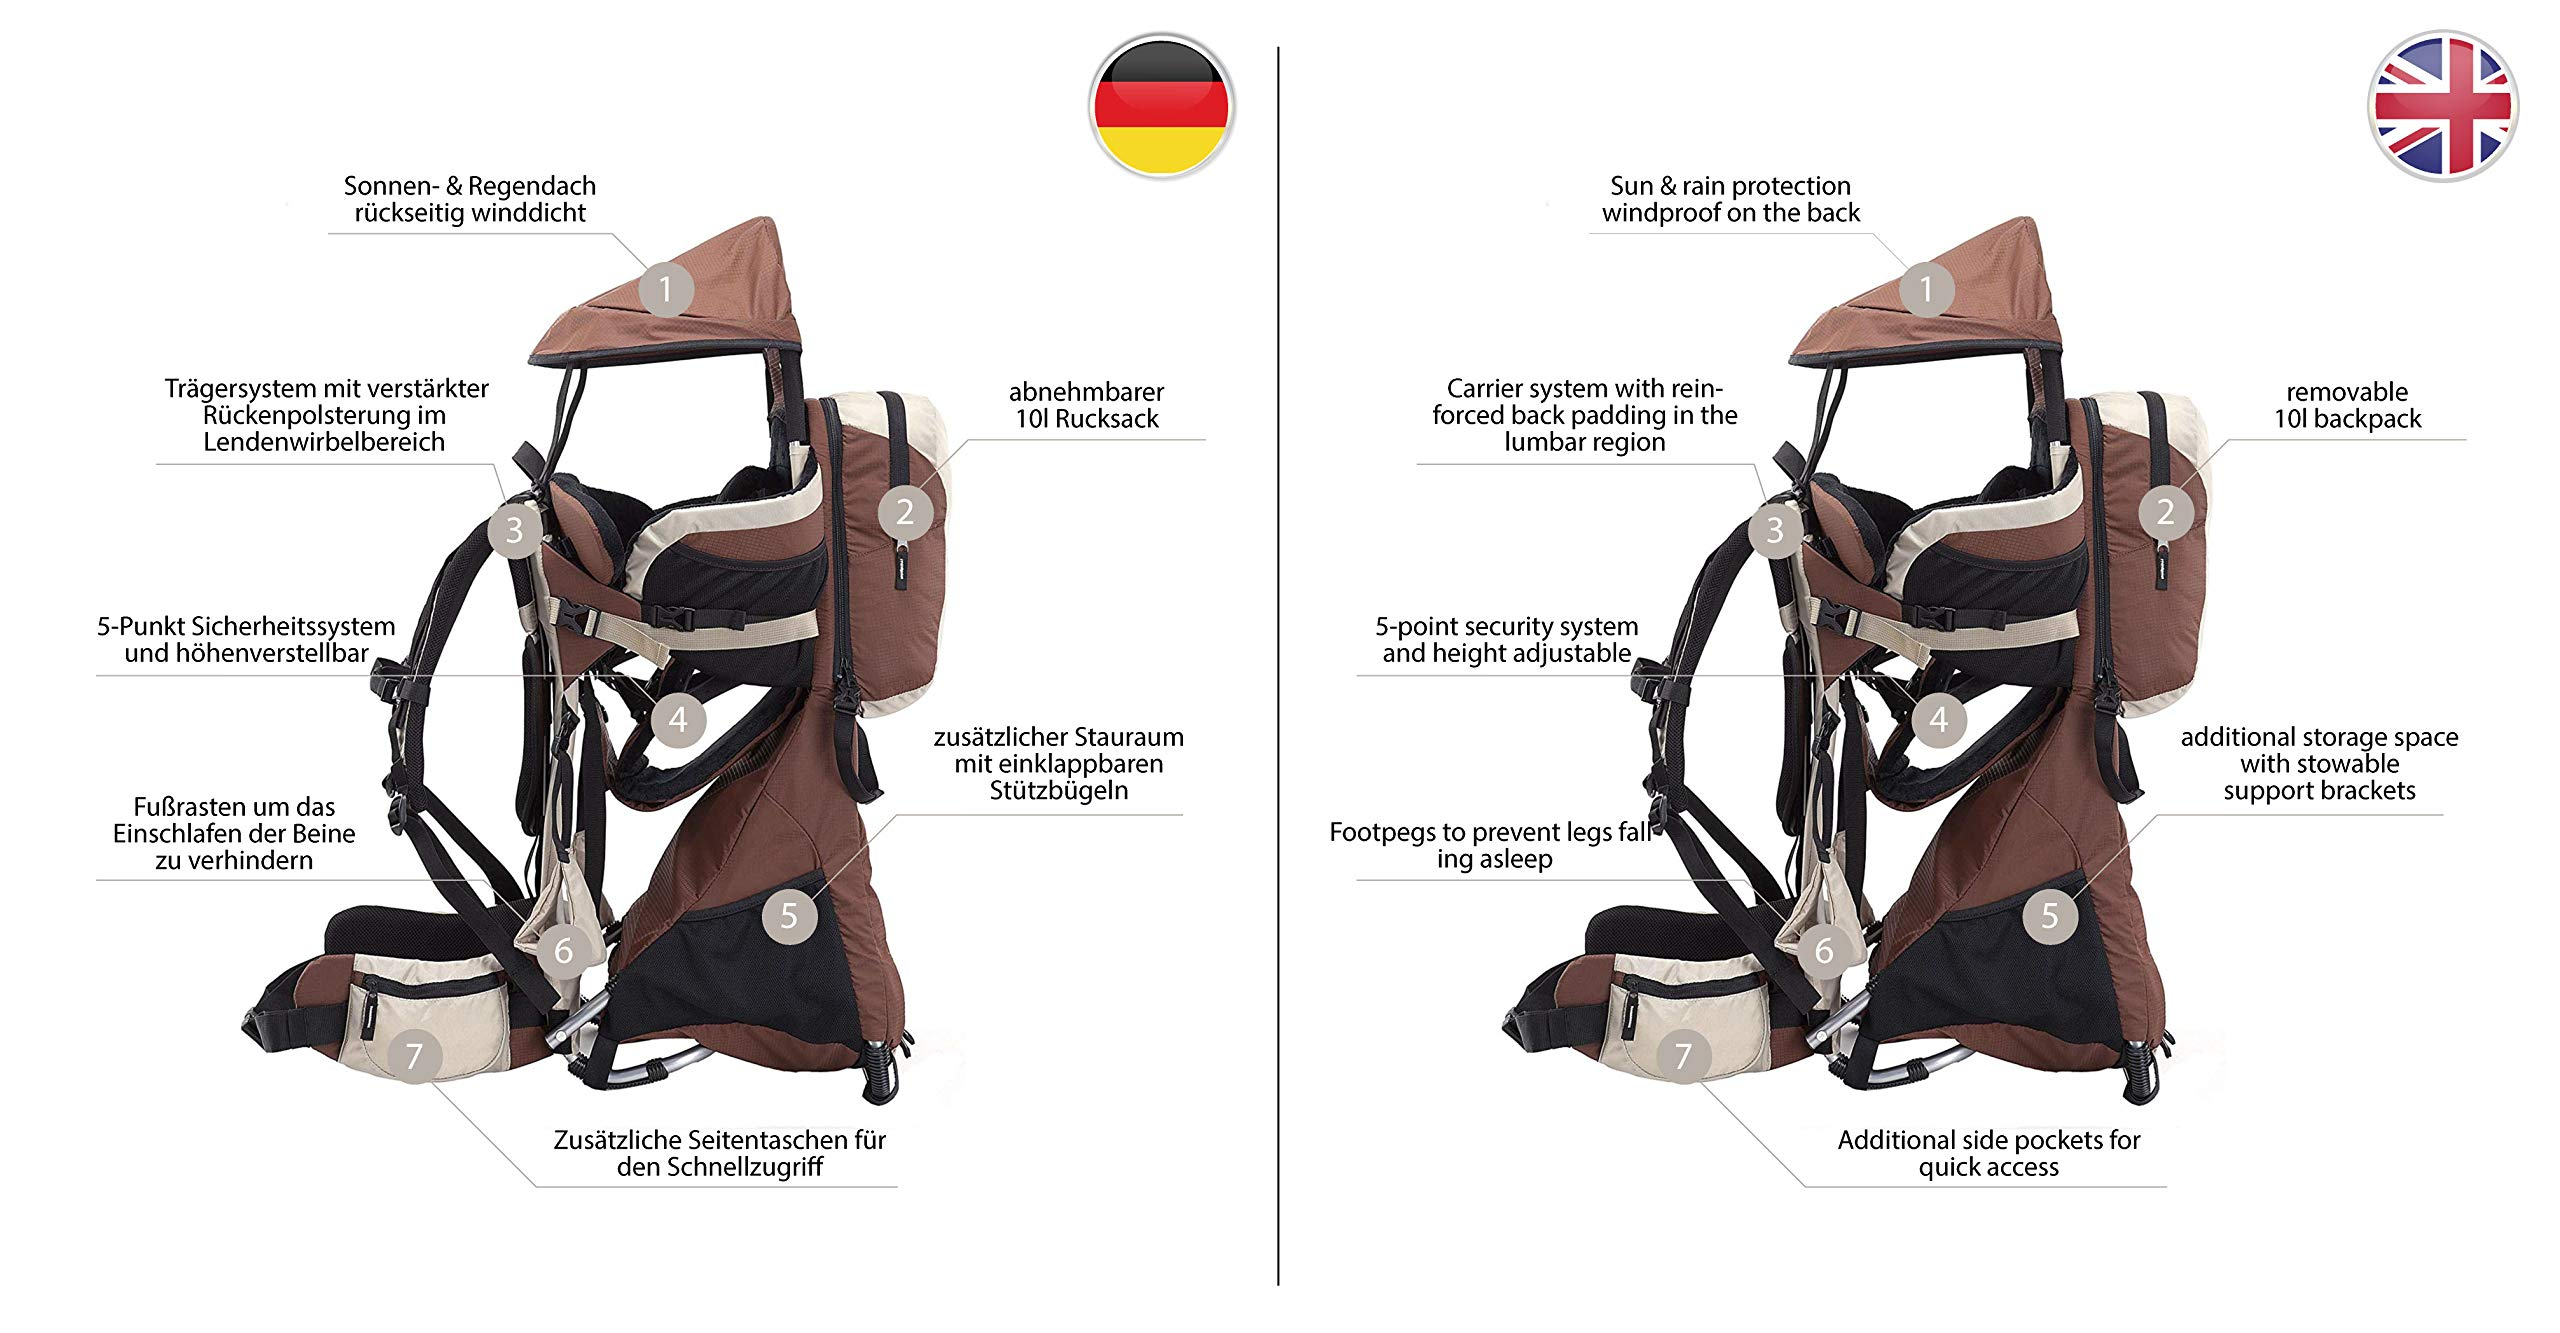 MONTIS RANGER PRO - Premium Backpack/Child Carrier - Holds up to 25kg M MONTIS OUTDOOR  3